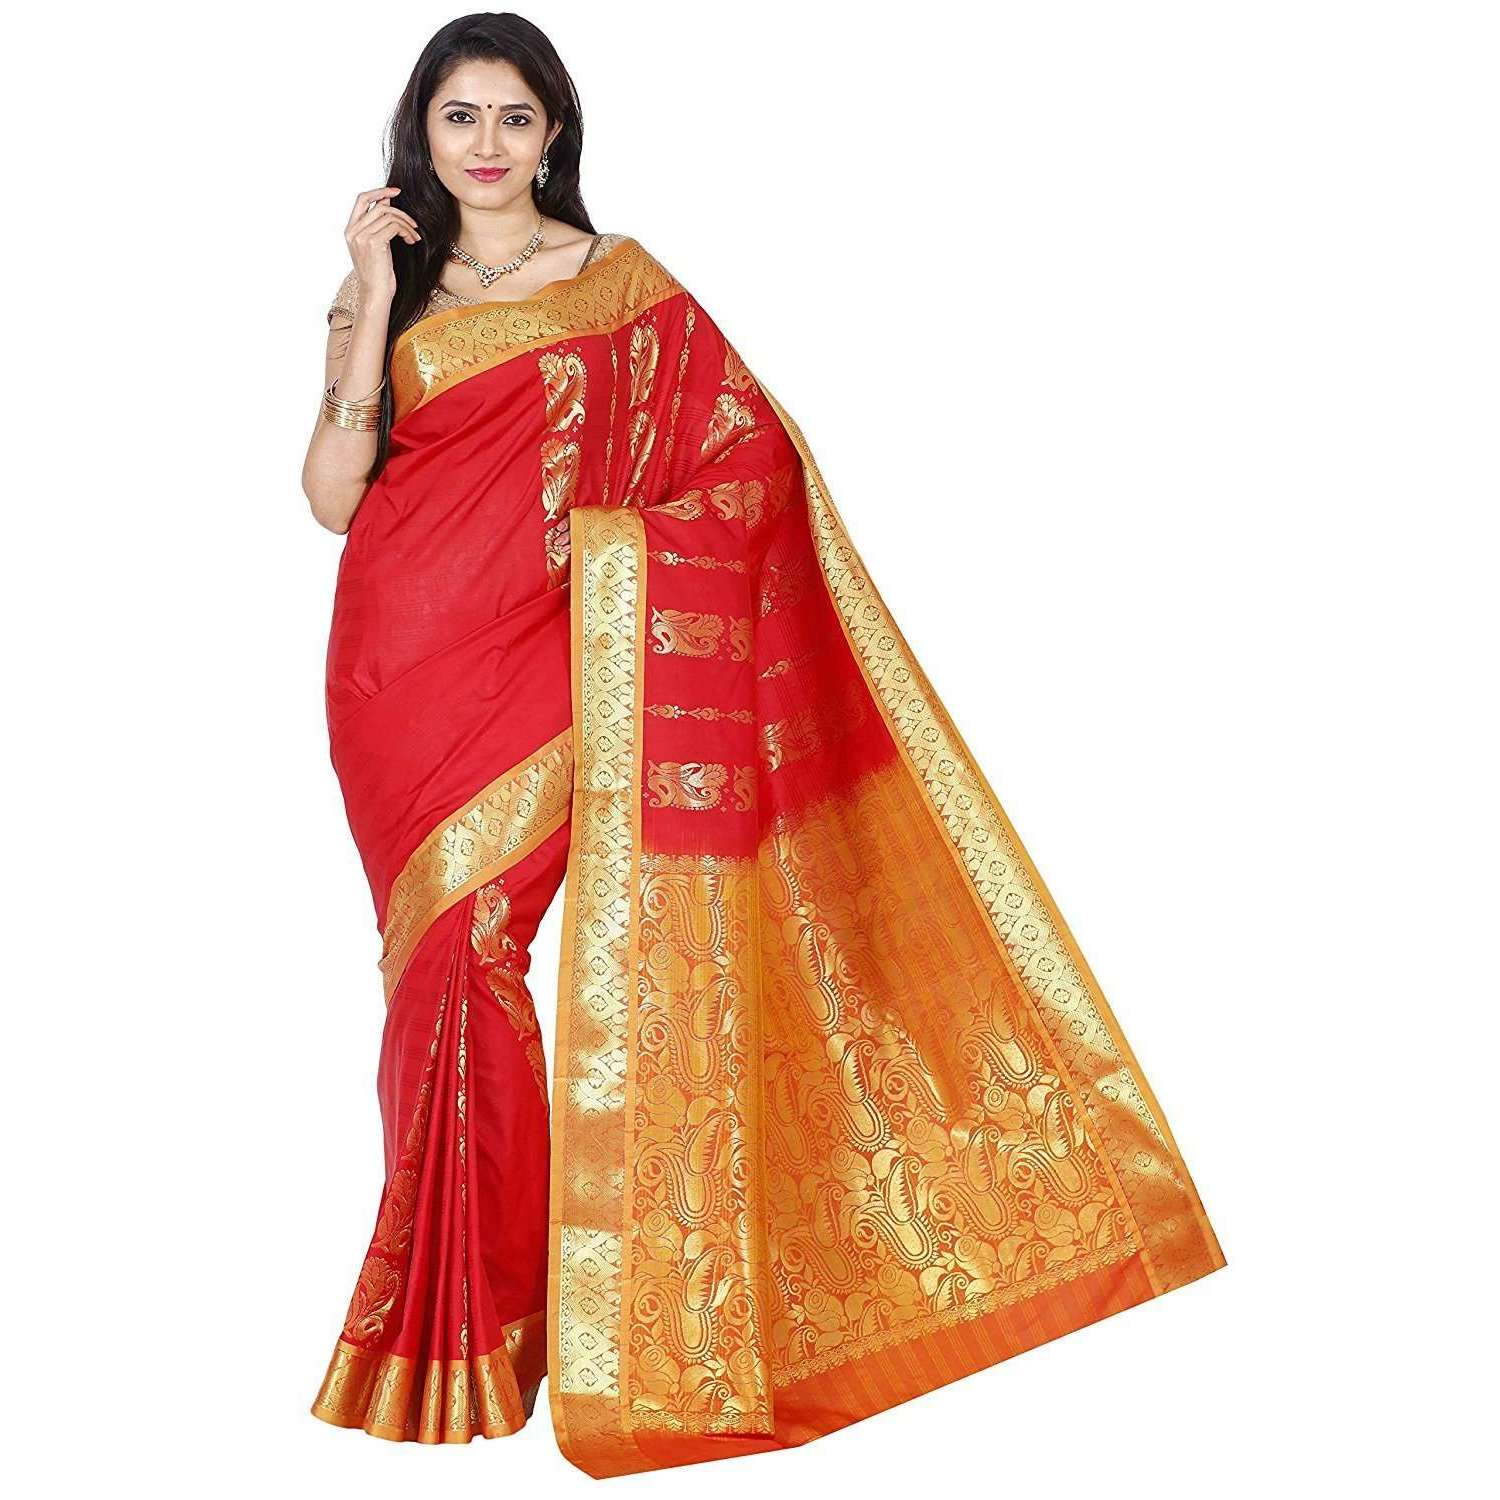 Arars Women's Kanchipuram Kanjivaram Pattu Style Artificial Plain Silk Saree With Blouse (SBB002 RED )